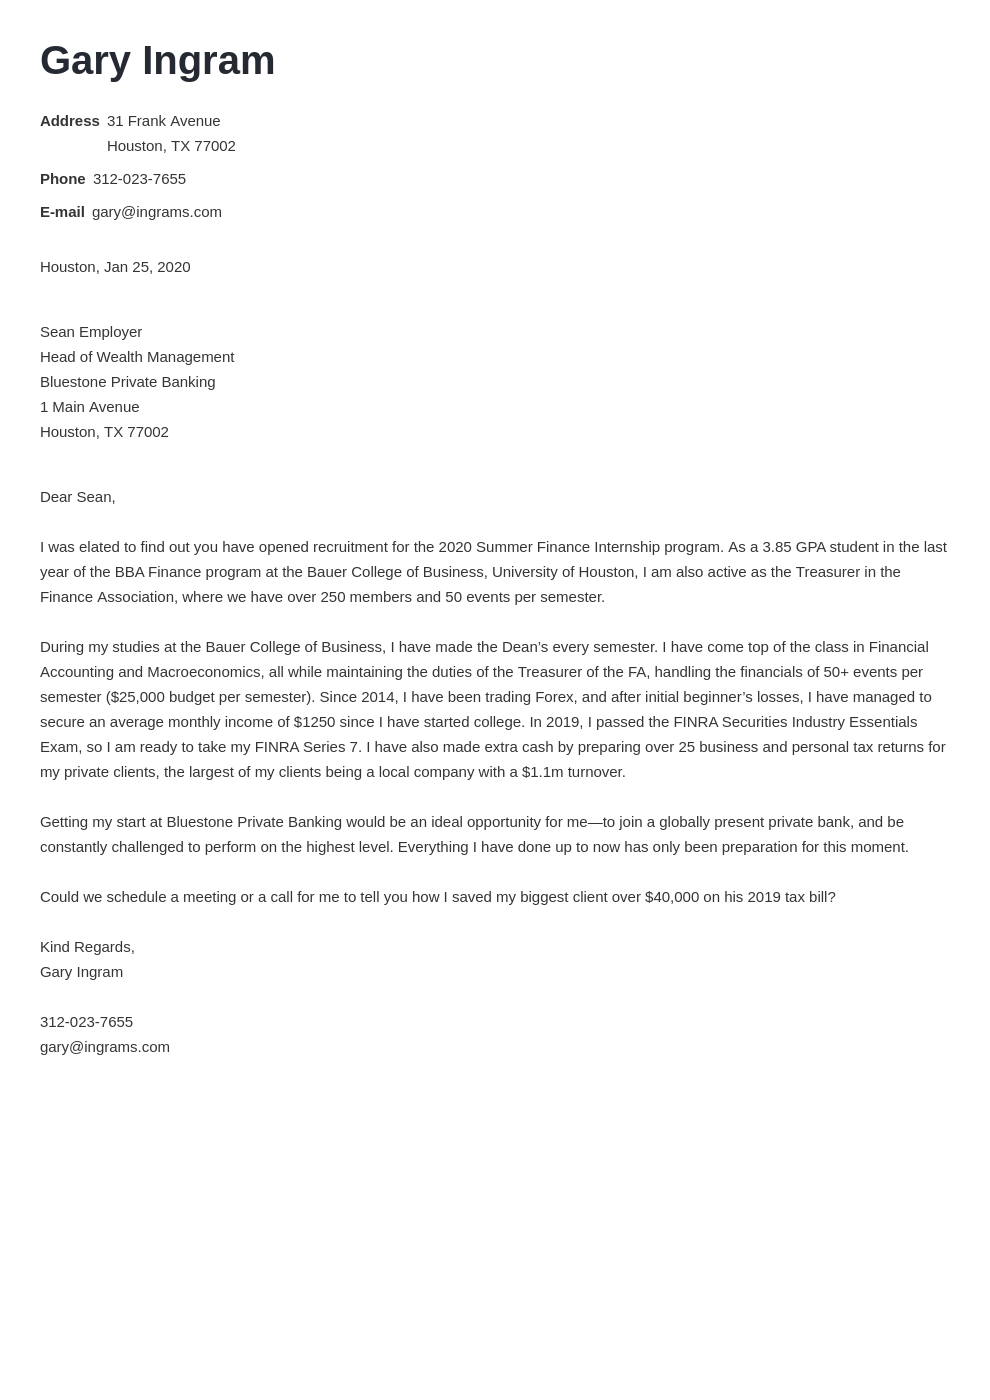 Finance Cover Letter Examples For Finance Jobs And Internships 2021